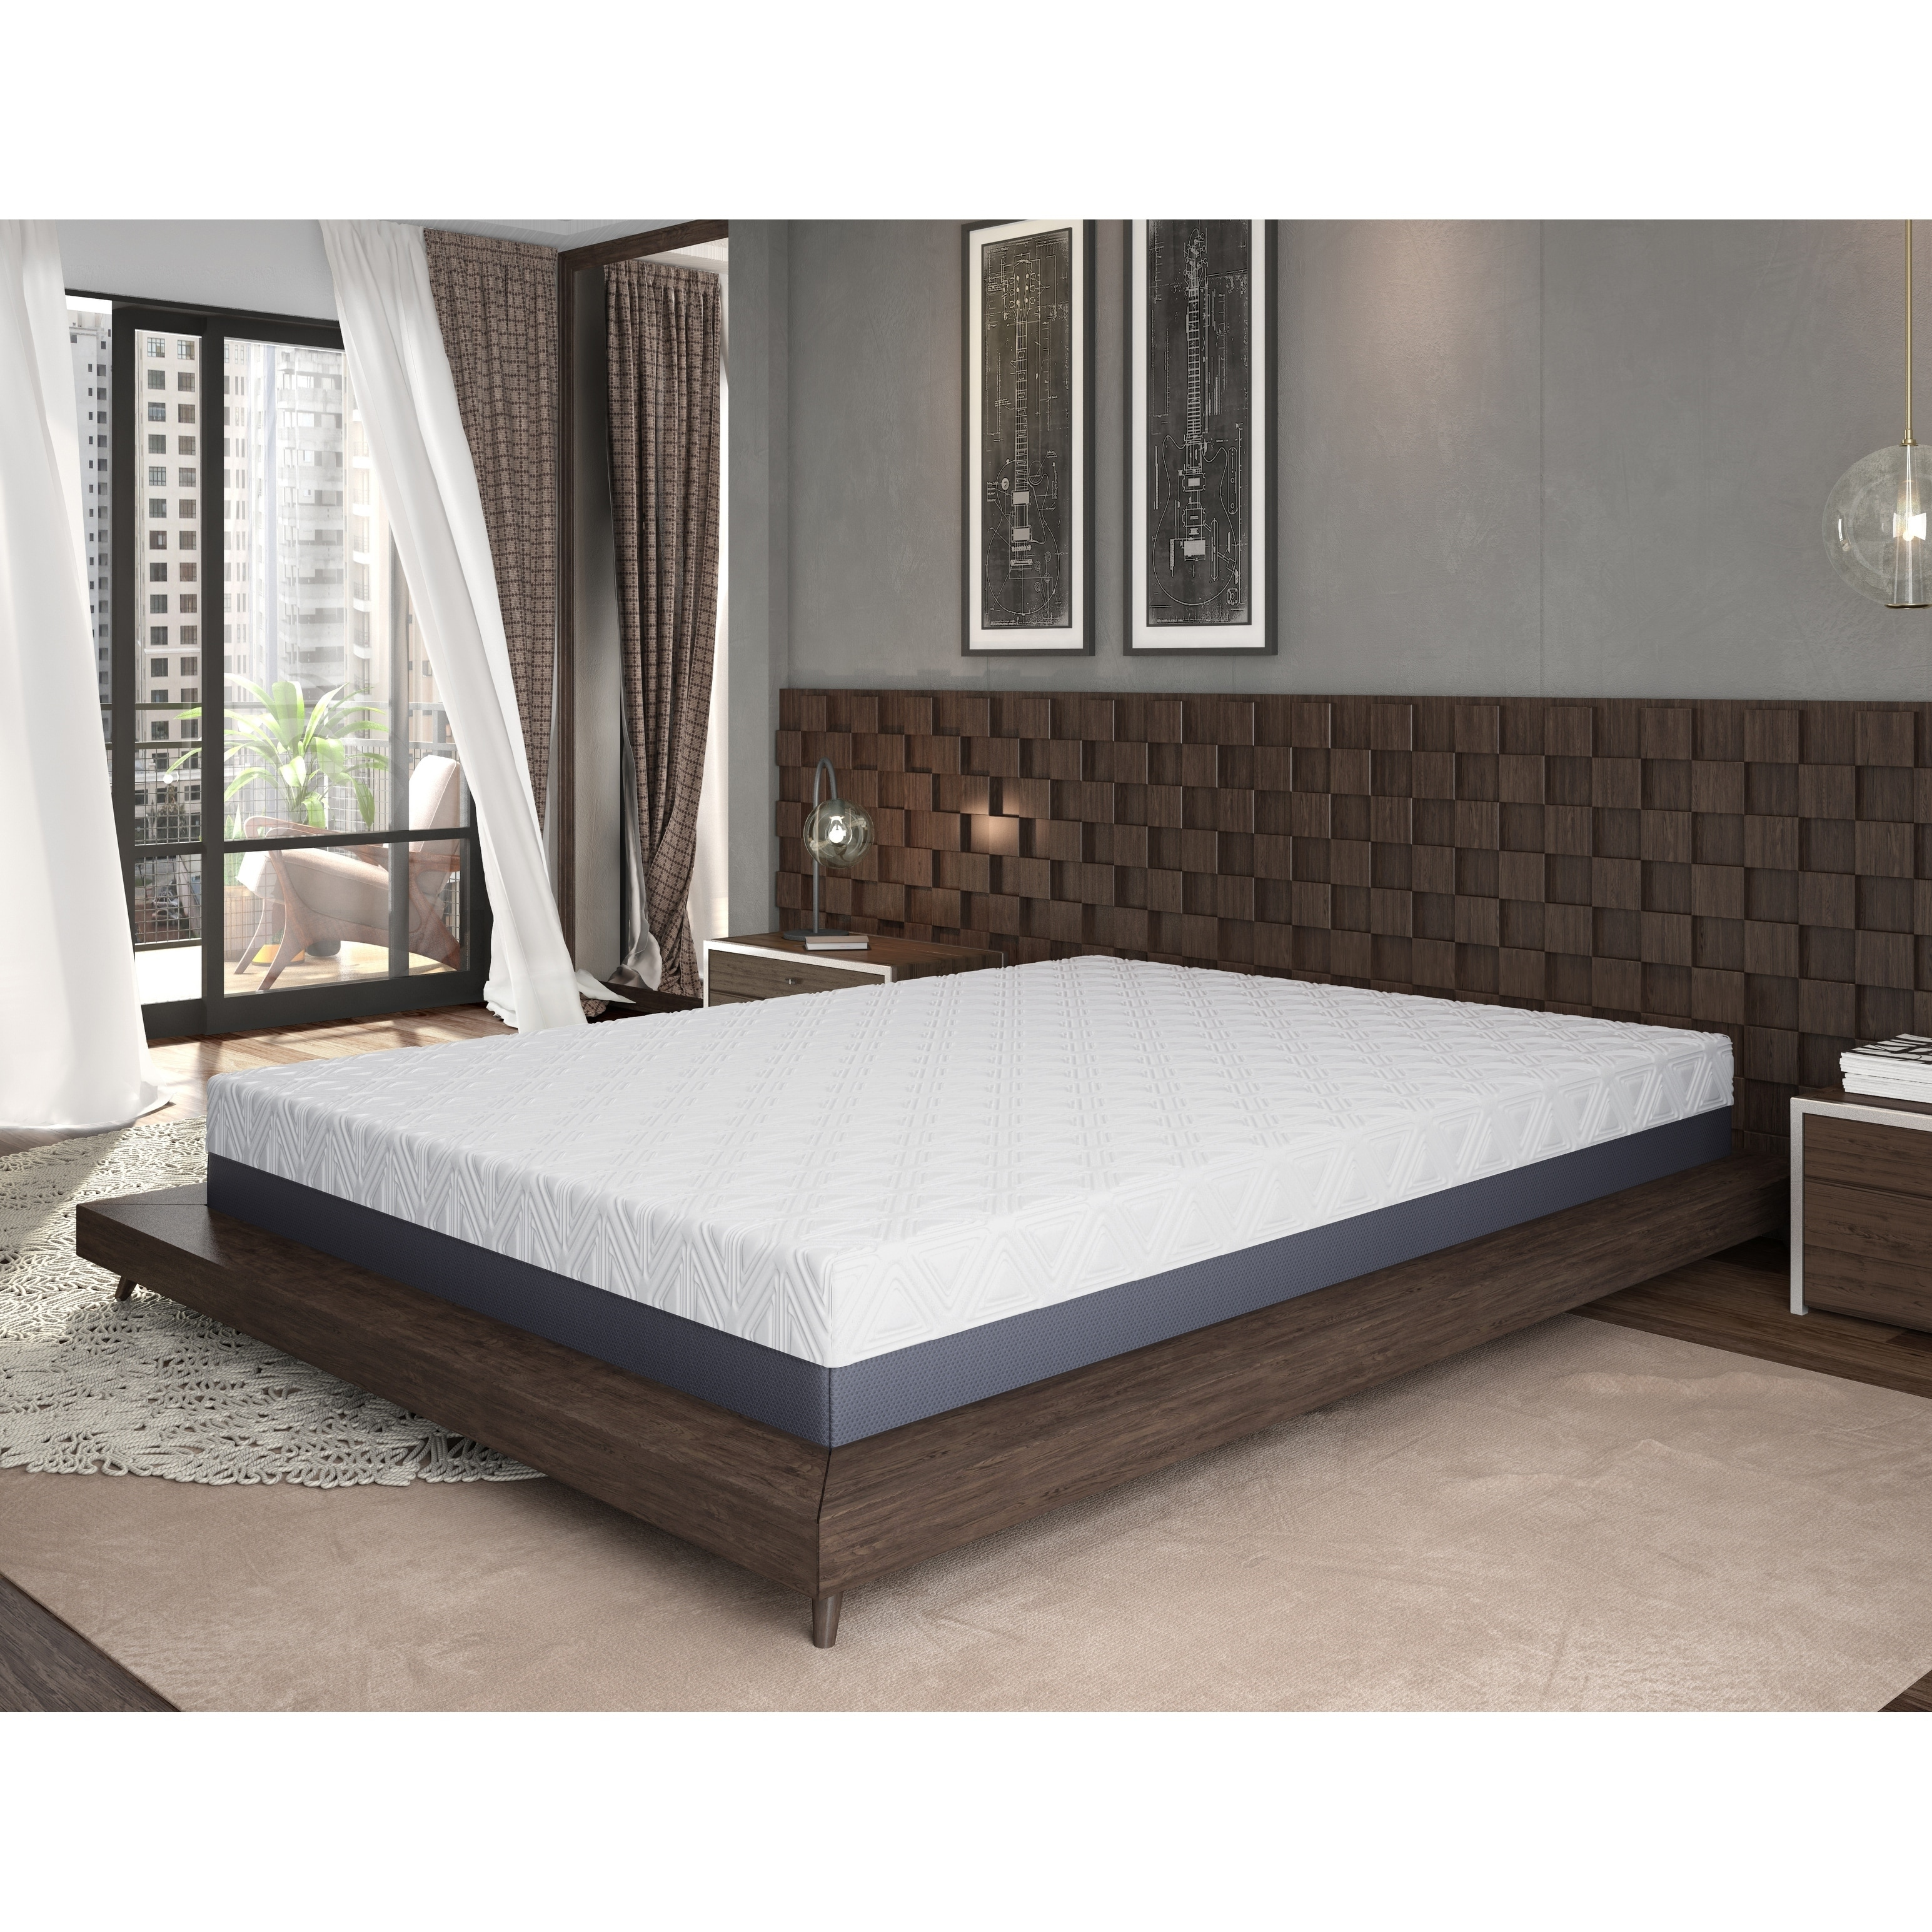 With options for twin and up to king sizes, you can save as much as 28% on a new mattress. omne sleep 10 inch gel memory foam mattress